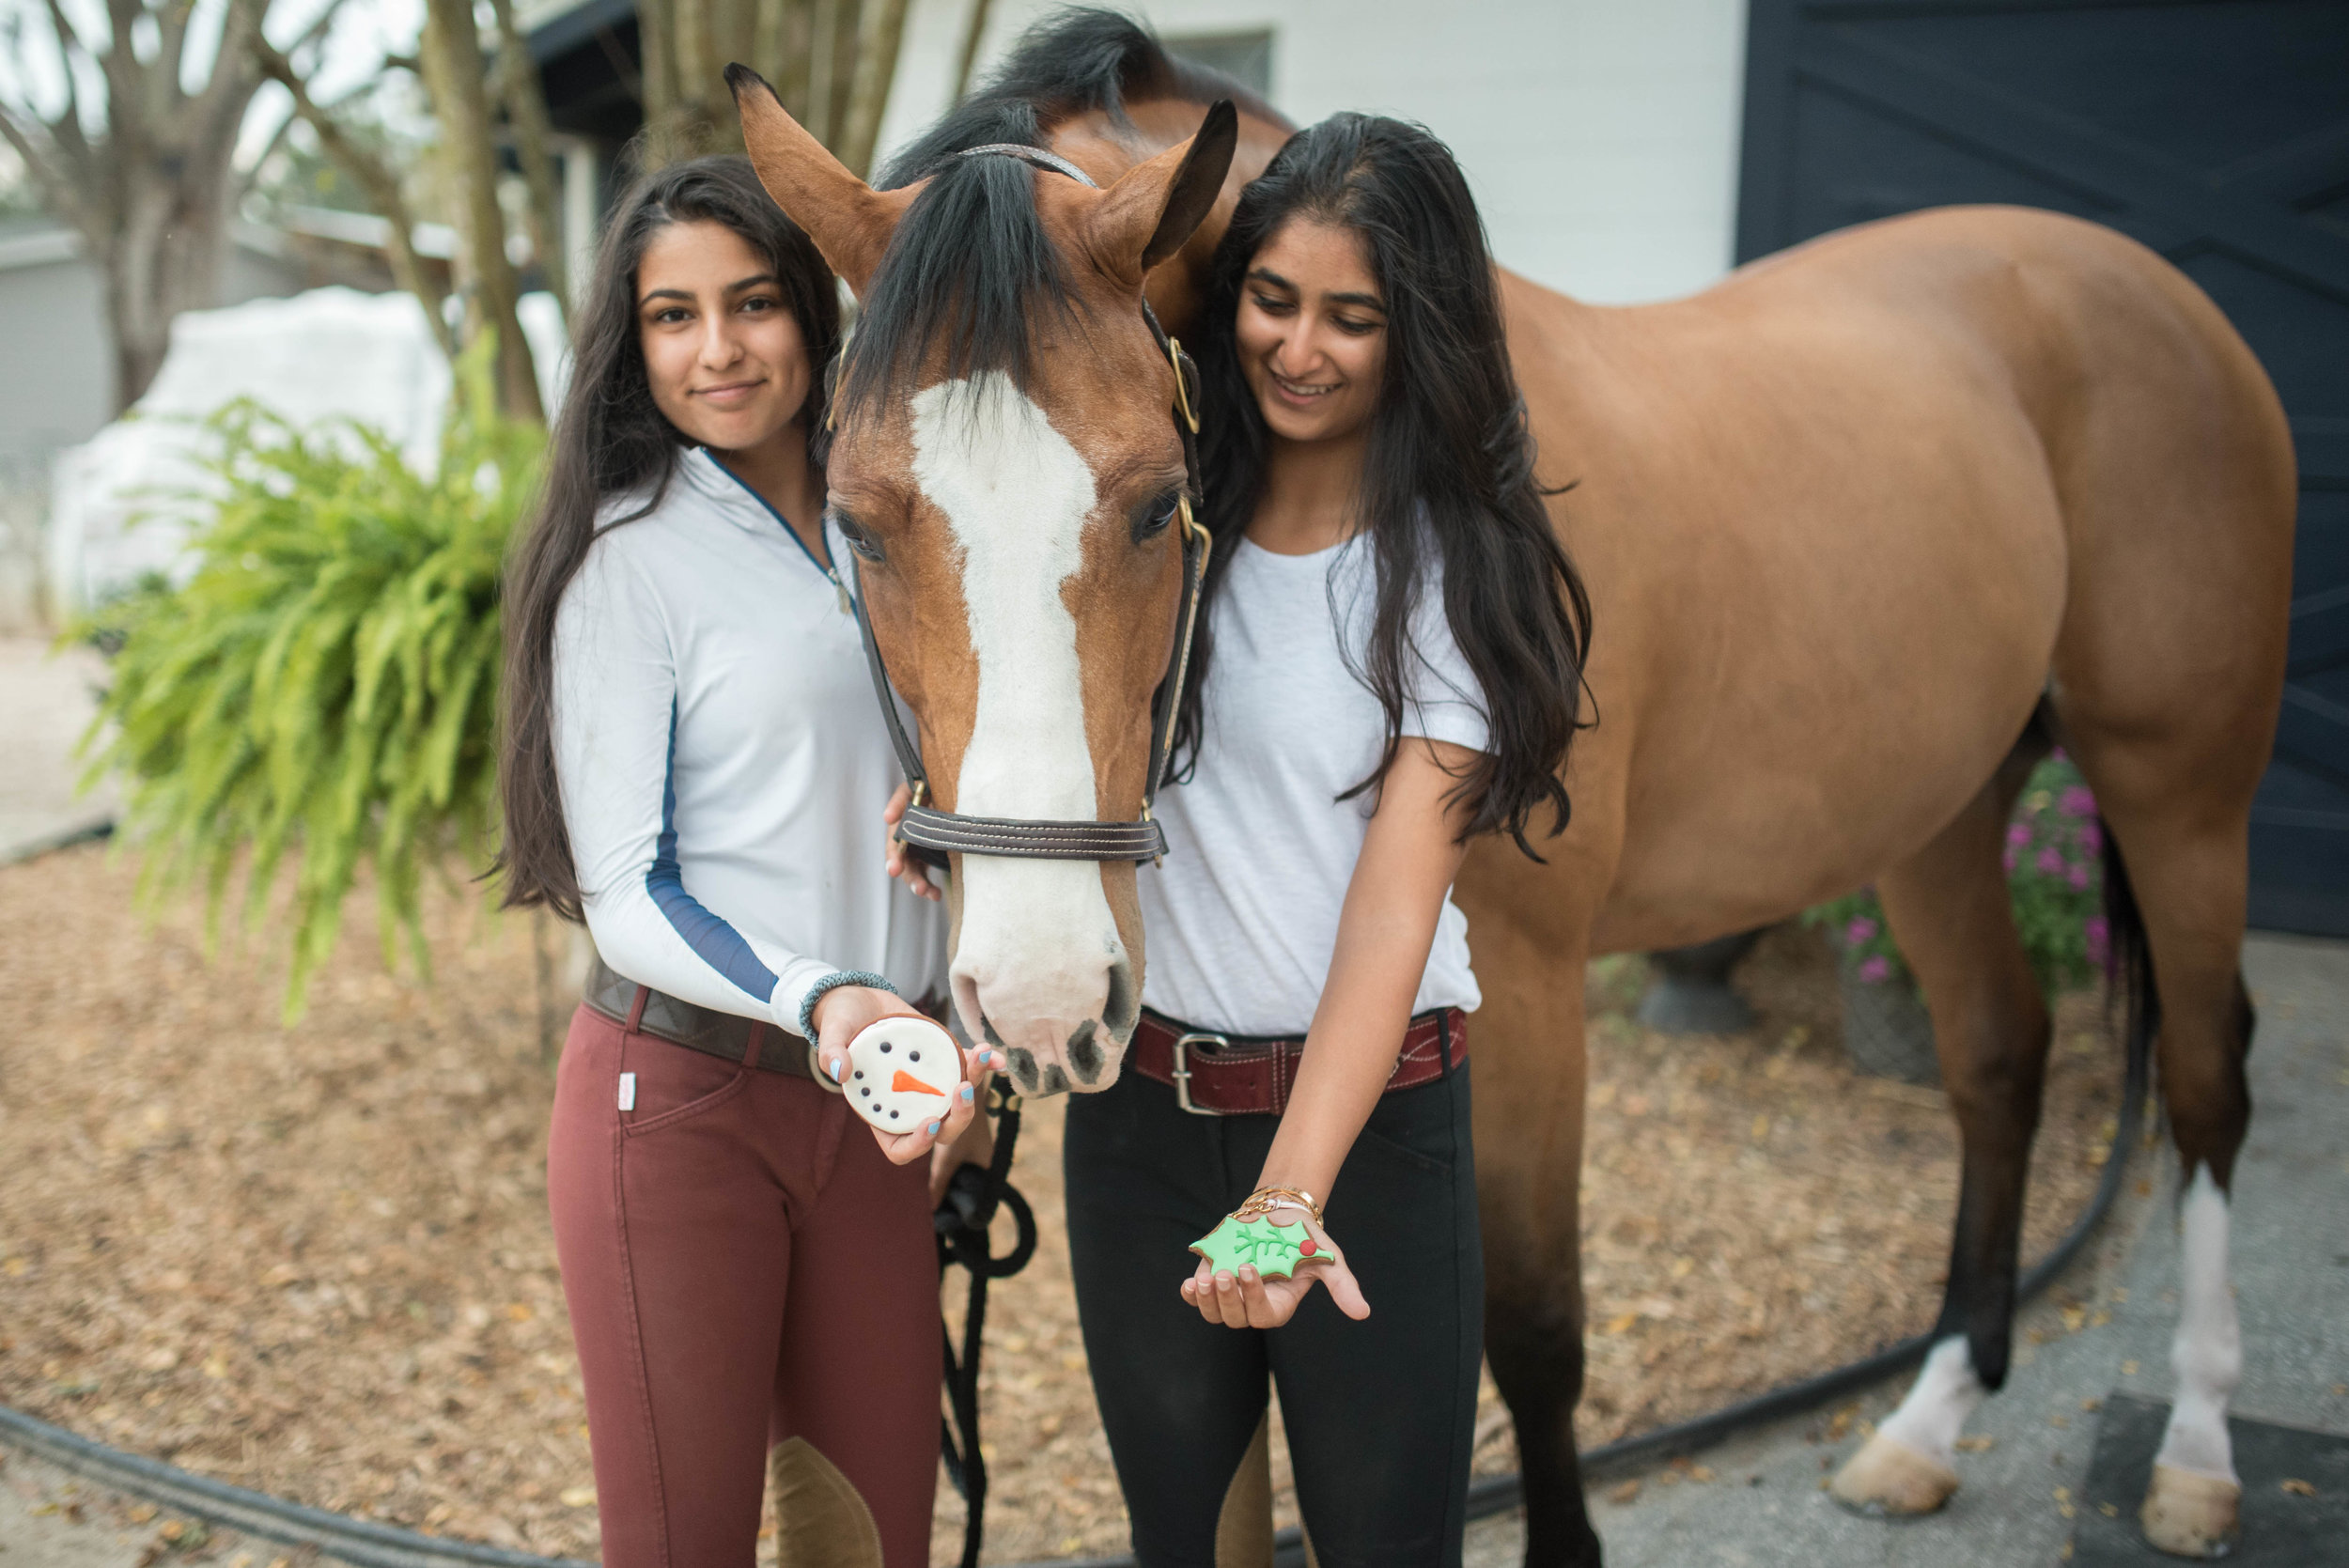 Thank you to my adorable models (Left to Right)Raina, Fetch, Isha and Parker (pictured above)